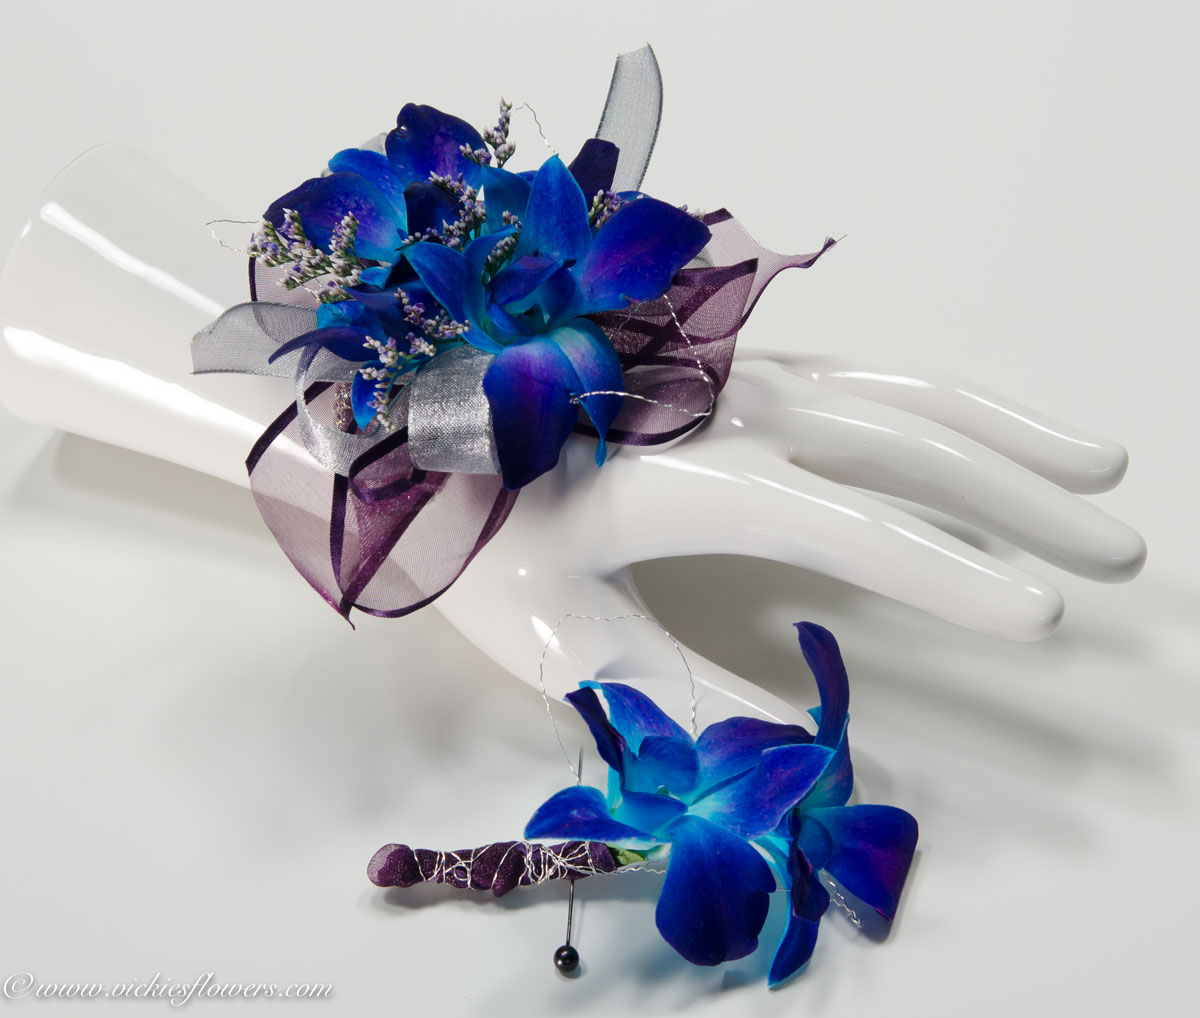 Corsage boutonnieres prom homecoming vickies flowers brighton prom 026 35 boutonniere 20 plus tax and delivery blue orchid wrist corsage with matching blue orchid boutonniere wrapped with purple lace ribbon izmirmasajfo Gallery